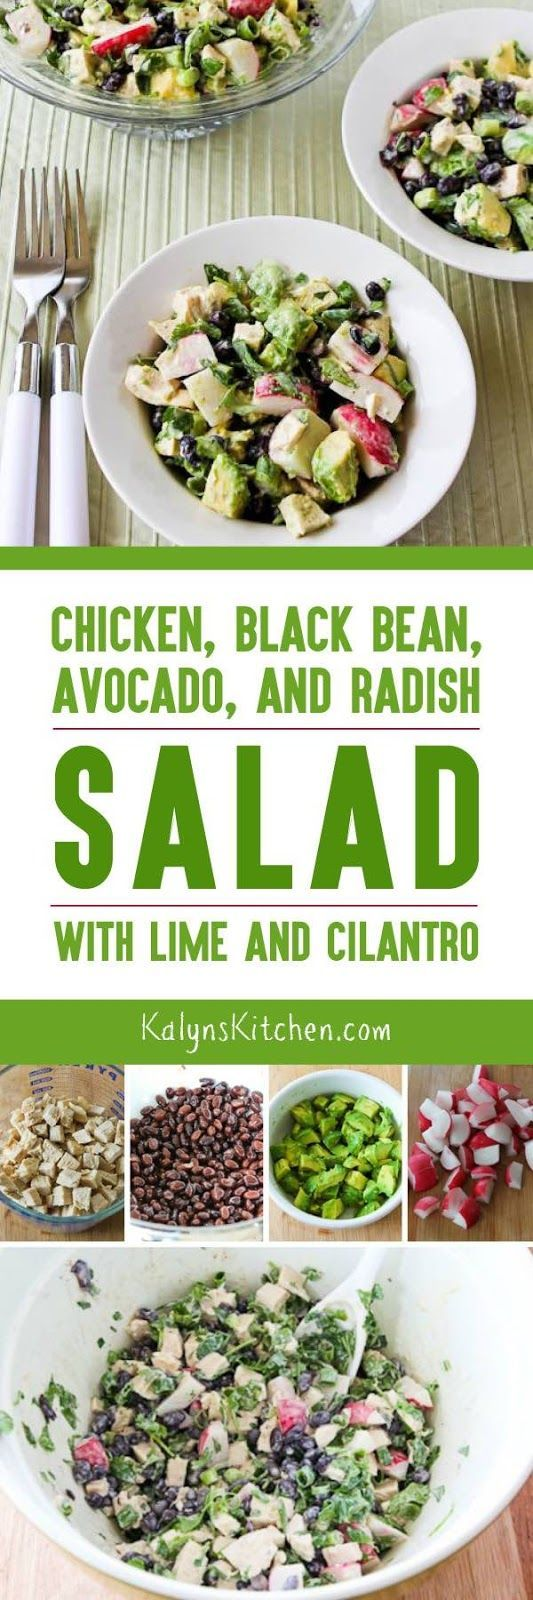 south beach diet recipes-salad with radishes